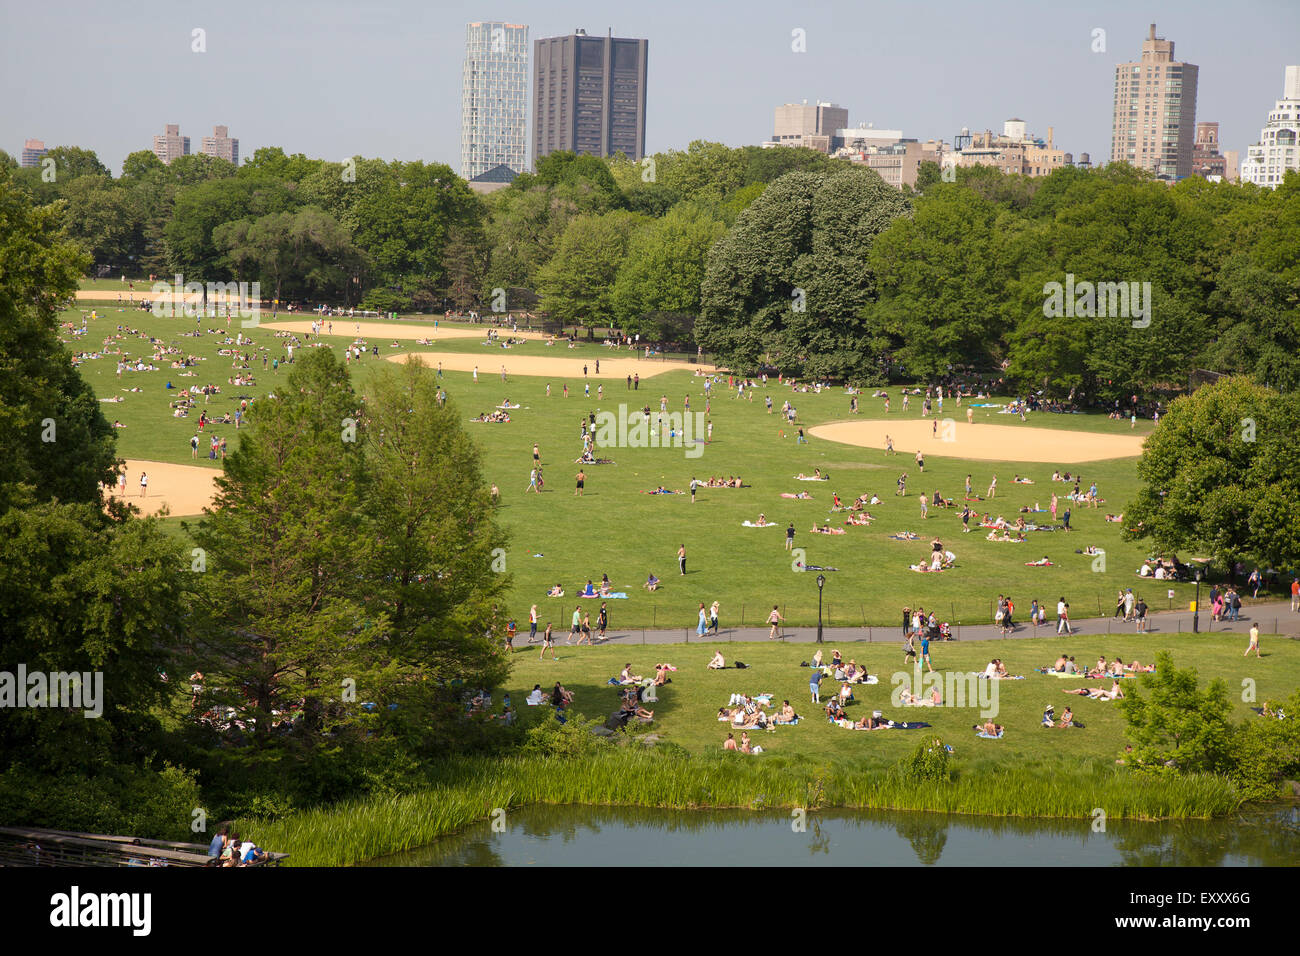 Turtle Pond and The Great Lawn in Central Park New York City - Stock Image